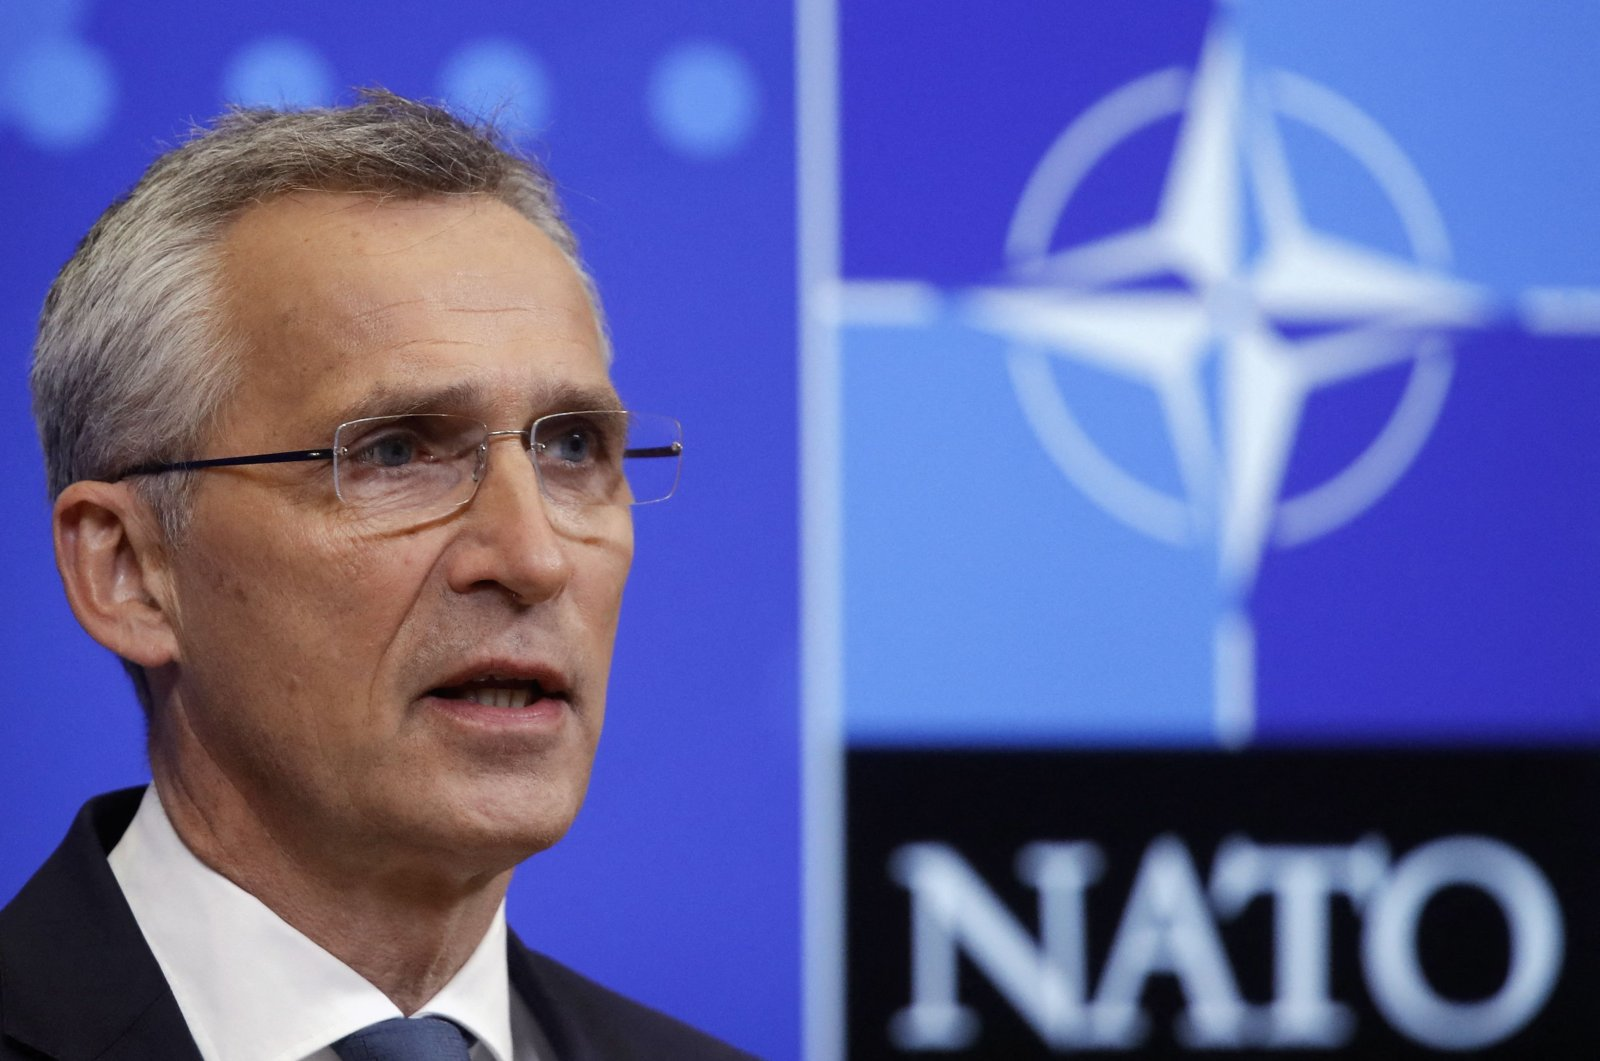 NATO Secretary General Jens Stoltenberg gives a press conference ahead of an online NATO Foreign and Defense Ministers' meeting at the Alliance's headquarters in Brussels, Belgium, May 31, 2021. (AFP Photo)